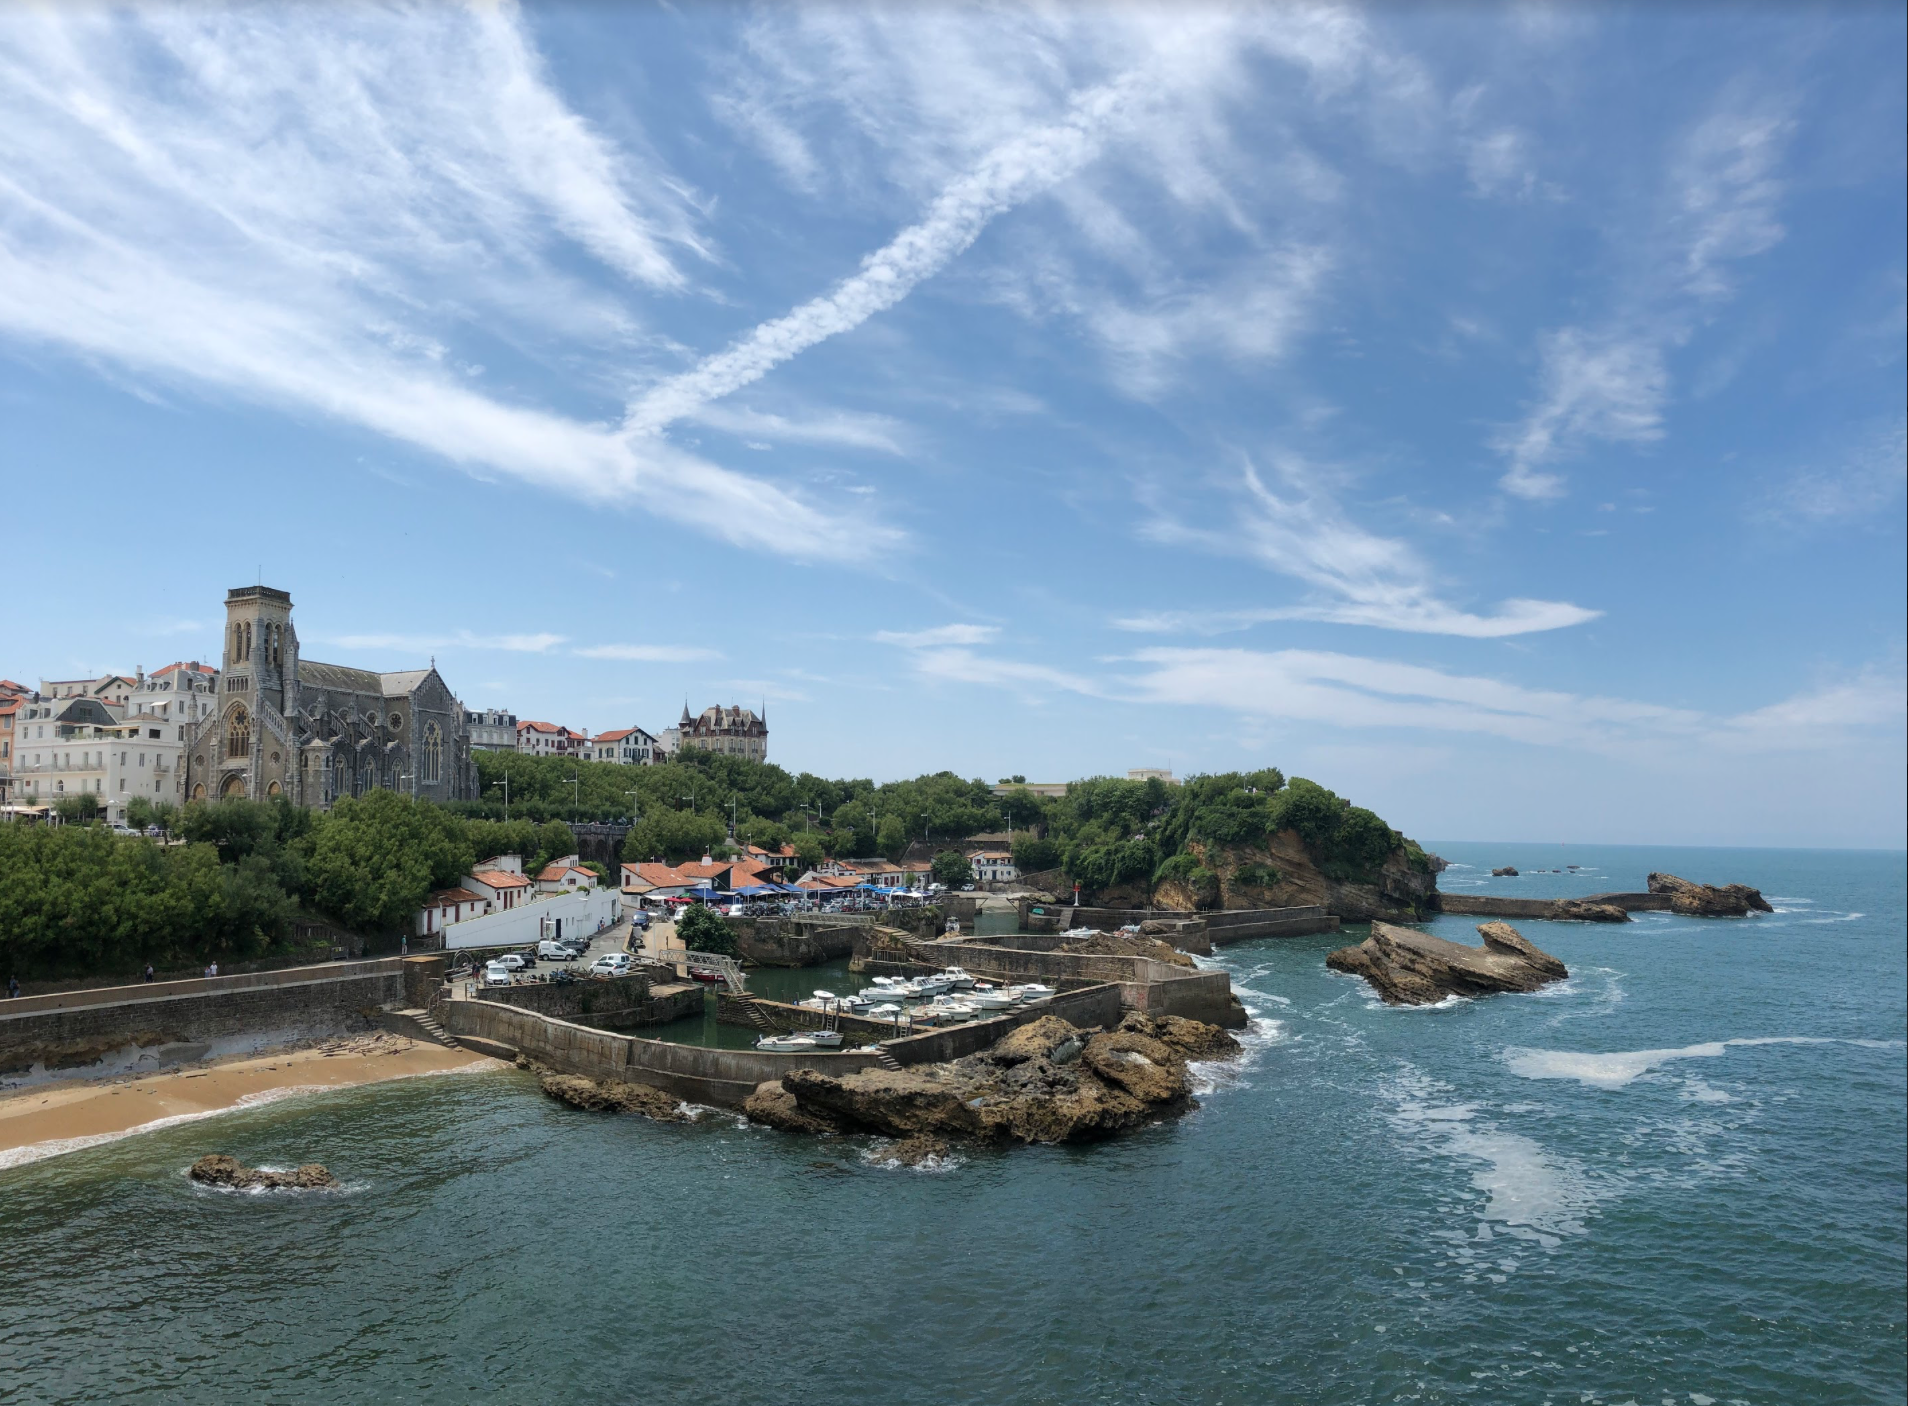 Venturing just 11 miles farther from the Spanish border, along the Basque coastline, you'll arrive in Biarritz, France. It's an elegant, coastal, French beach town with breathtaking ocean views and a laid back attitude.